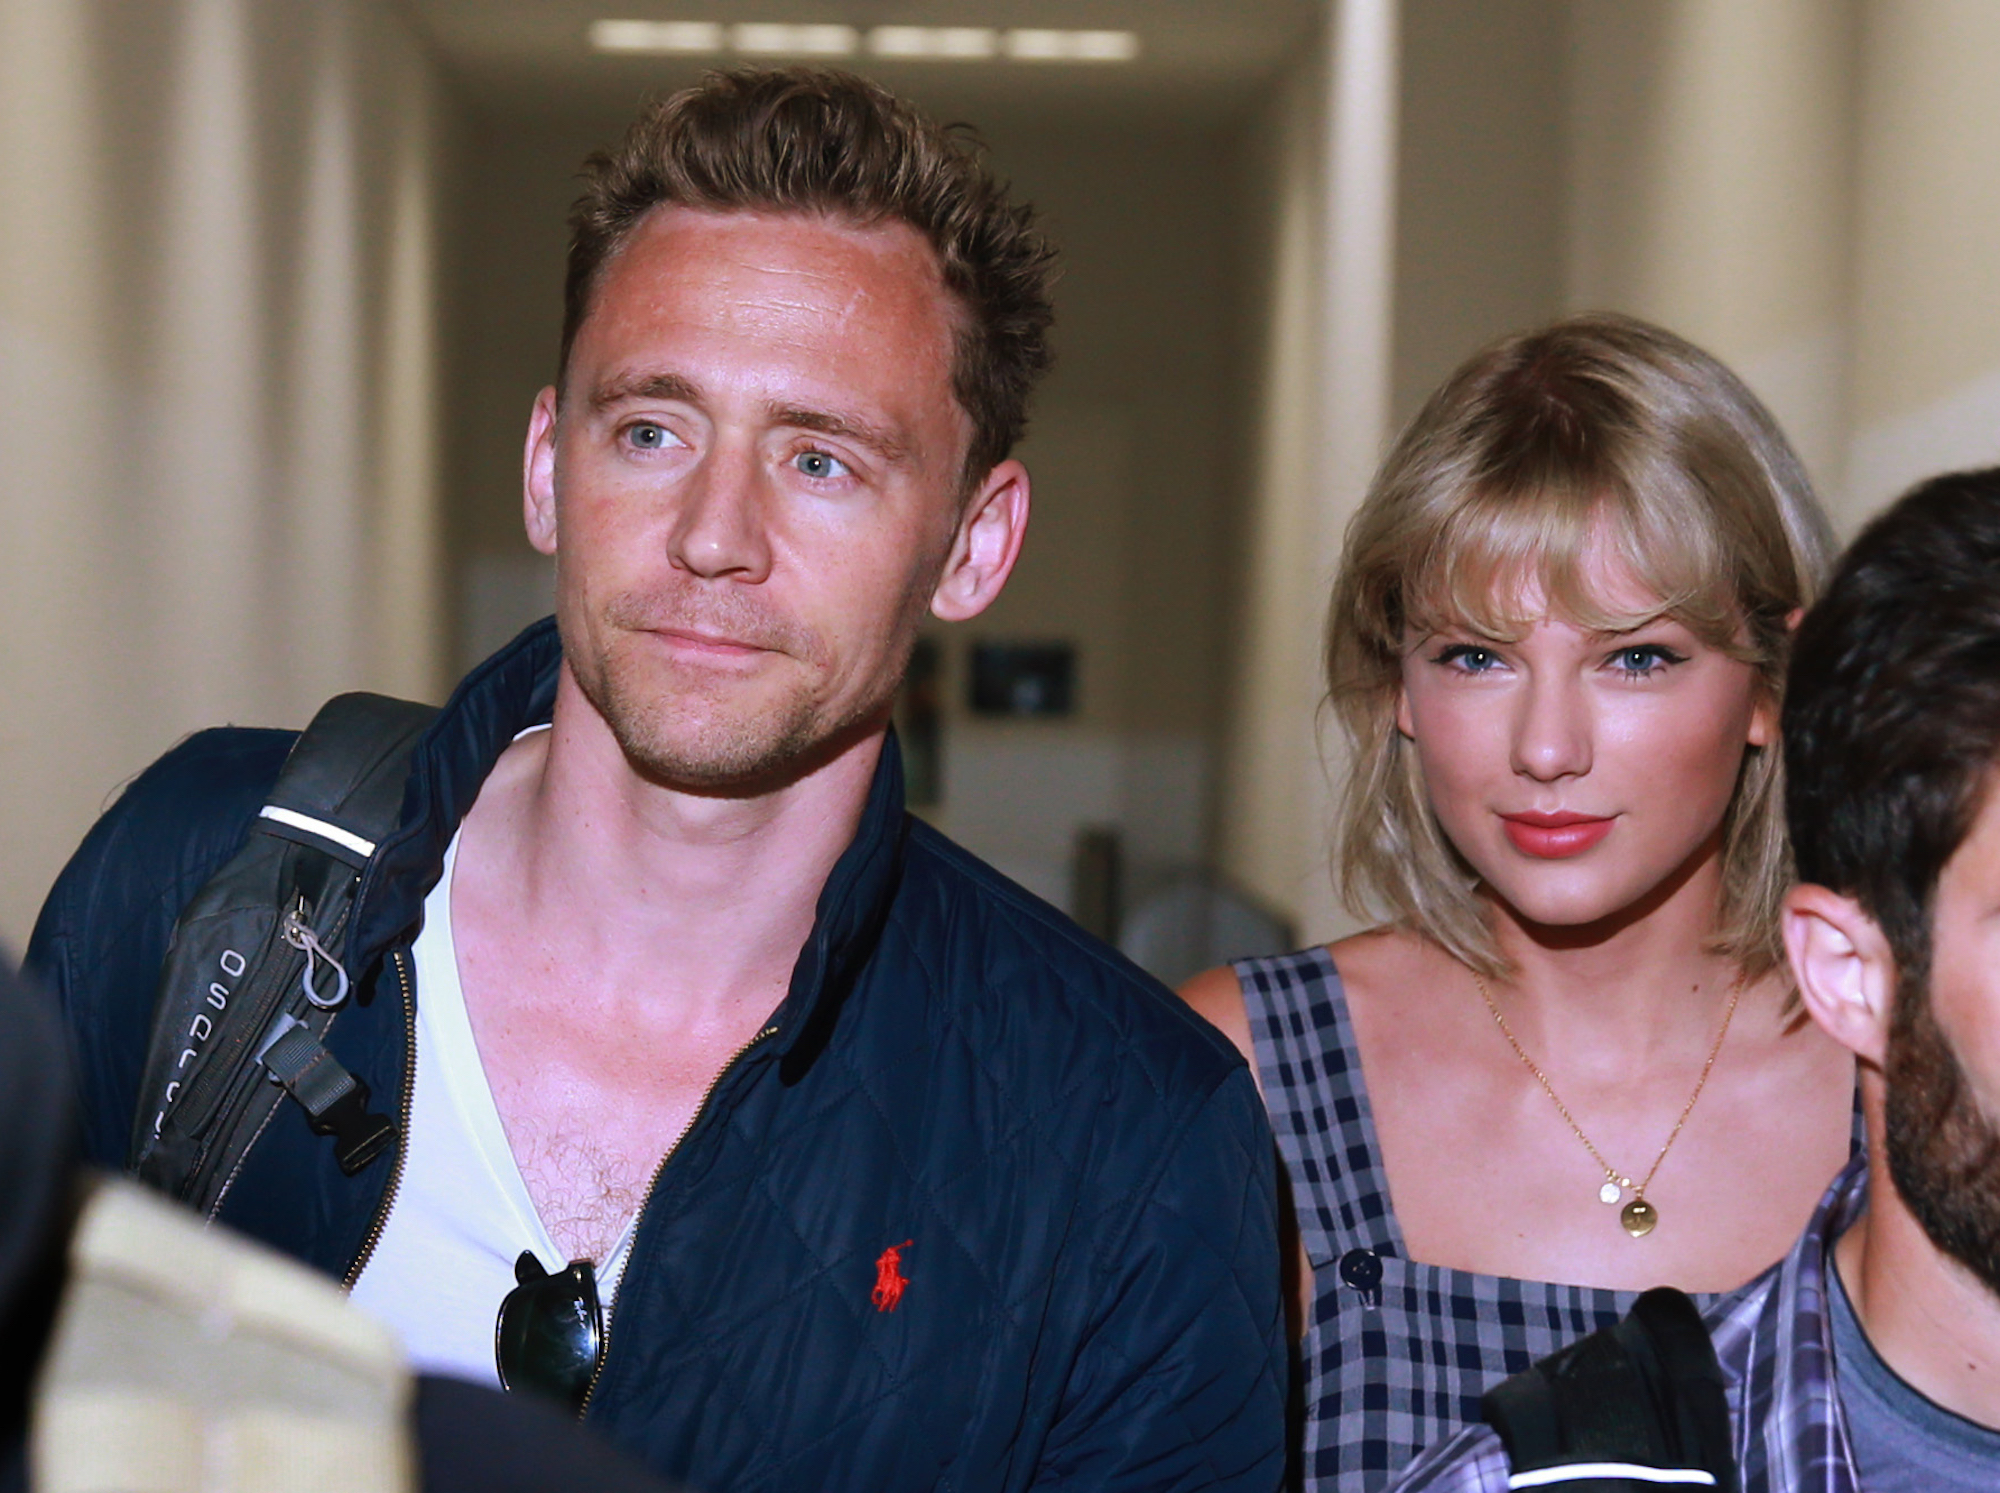 Tom Hiddleston and Taylor Swift arrive at Sydney International Airport, 2016